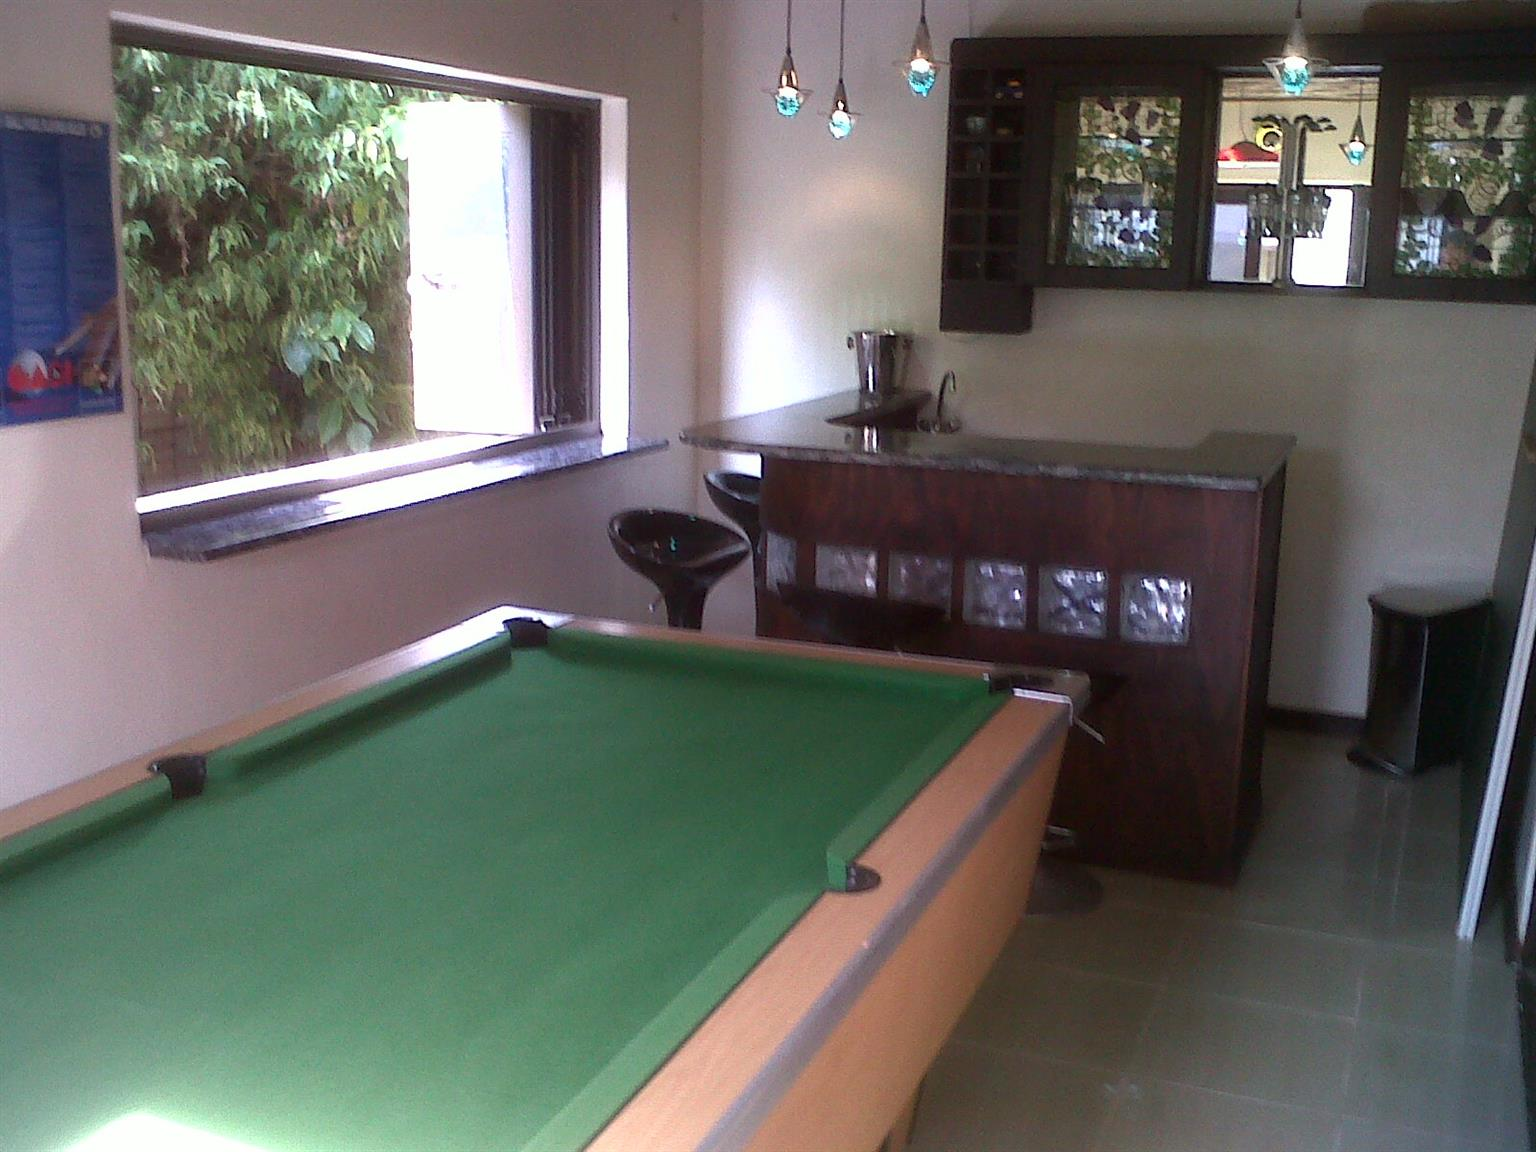 Ballito Holliday home for Easter R1800 per day sleeps 8